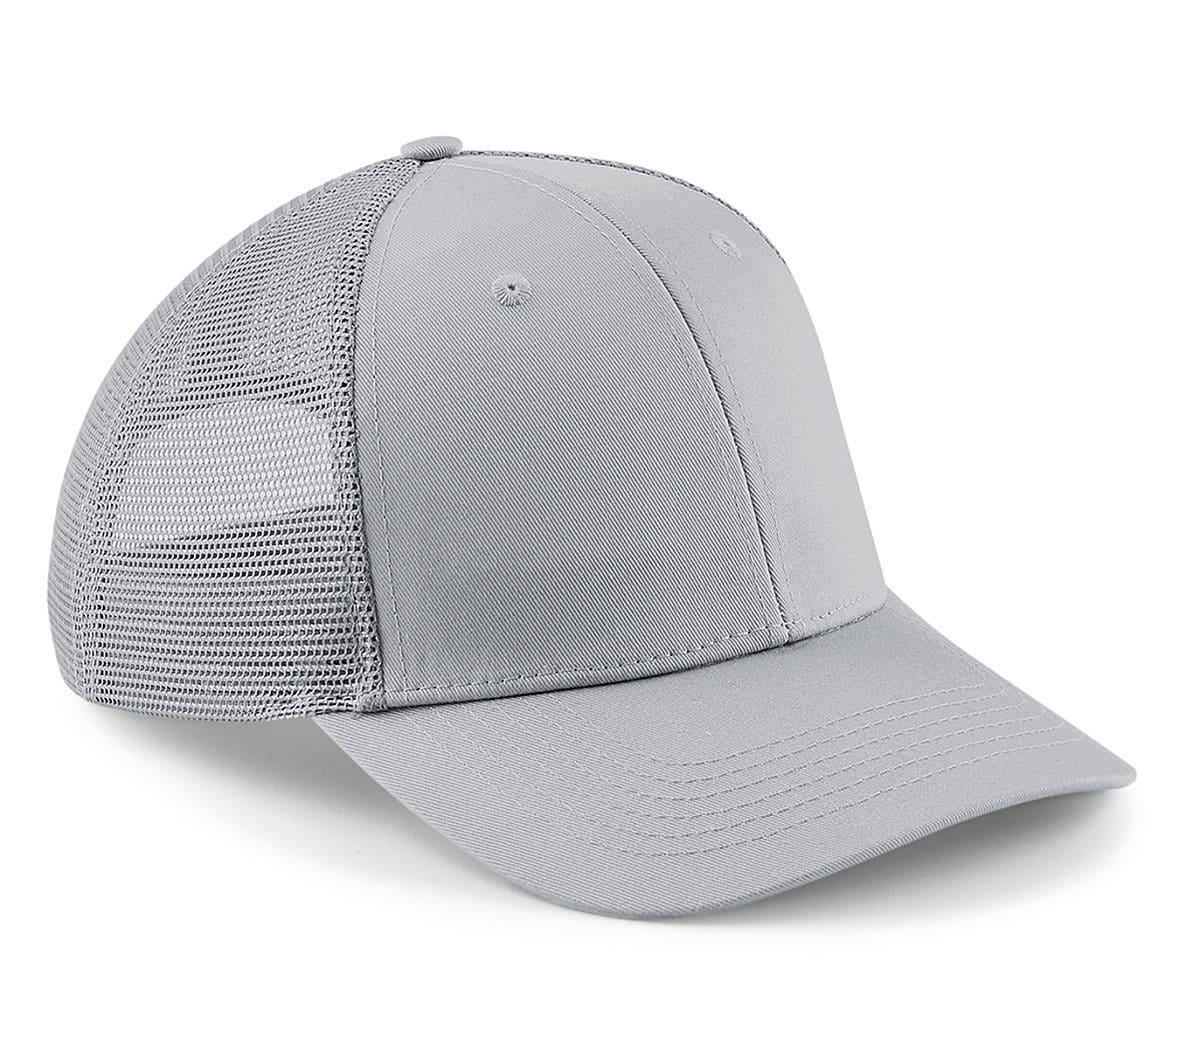 Beechfield Urbanwear Trucker Cap in Light Grey (Product Code: B646)